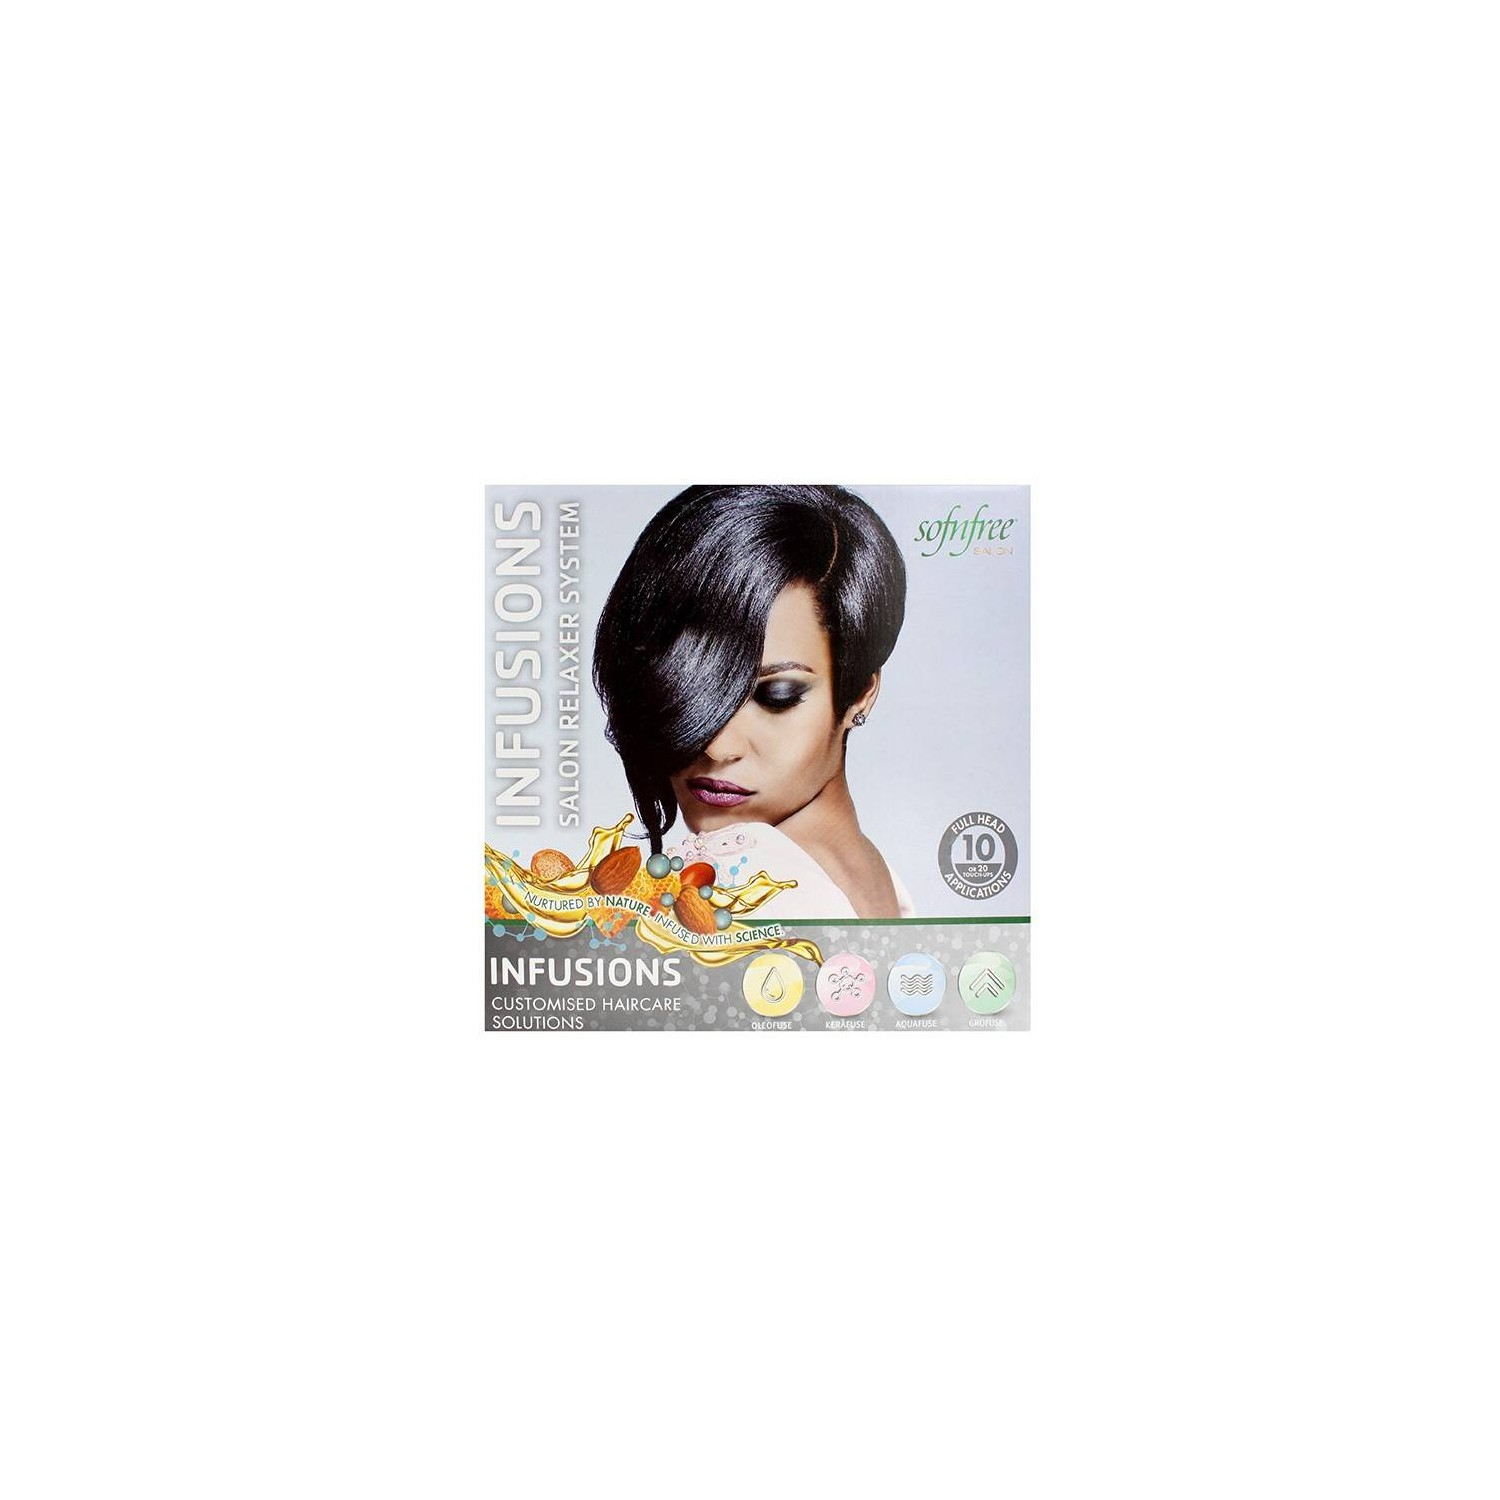 Sofn Free Salon Infusions Relaxer Kit